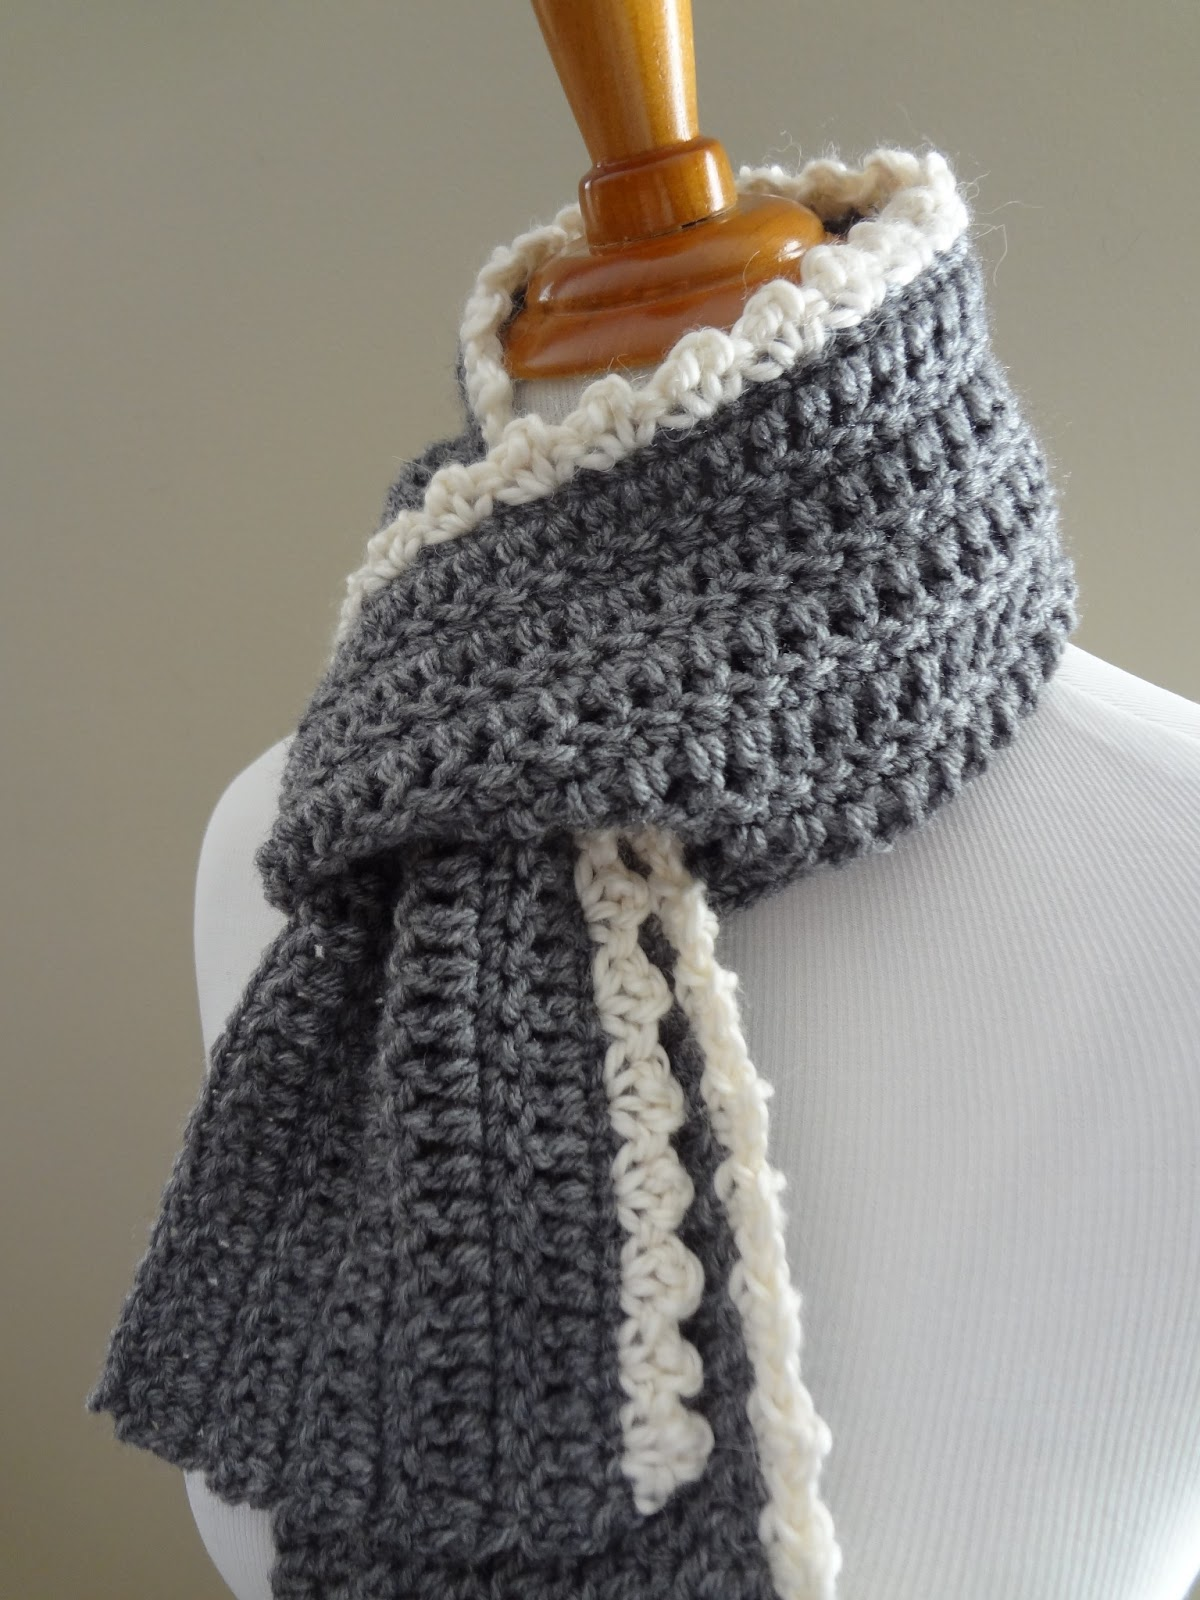 Crochet Pattern For Scarf Easy : Fiber Flux: Free Crochet Pattern...Ingrid Scarf